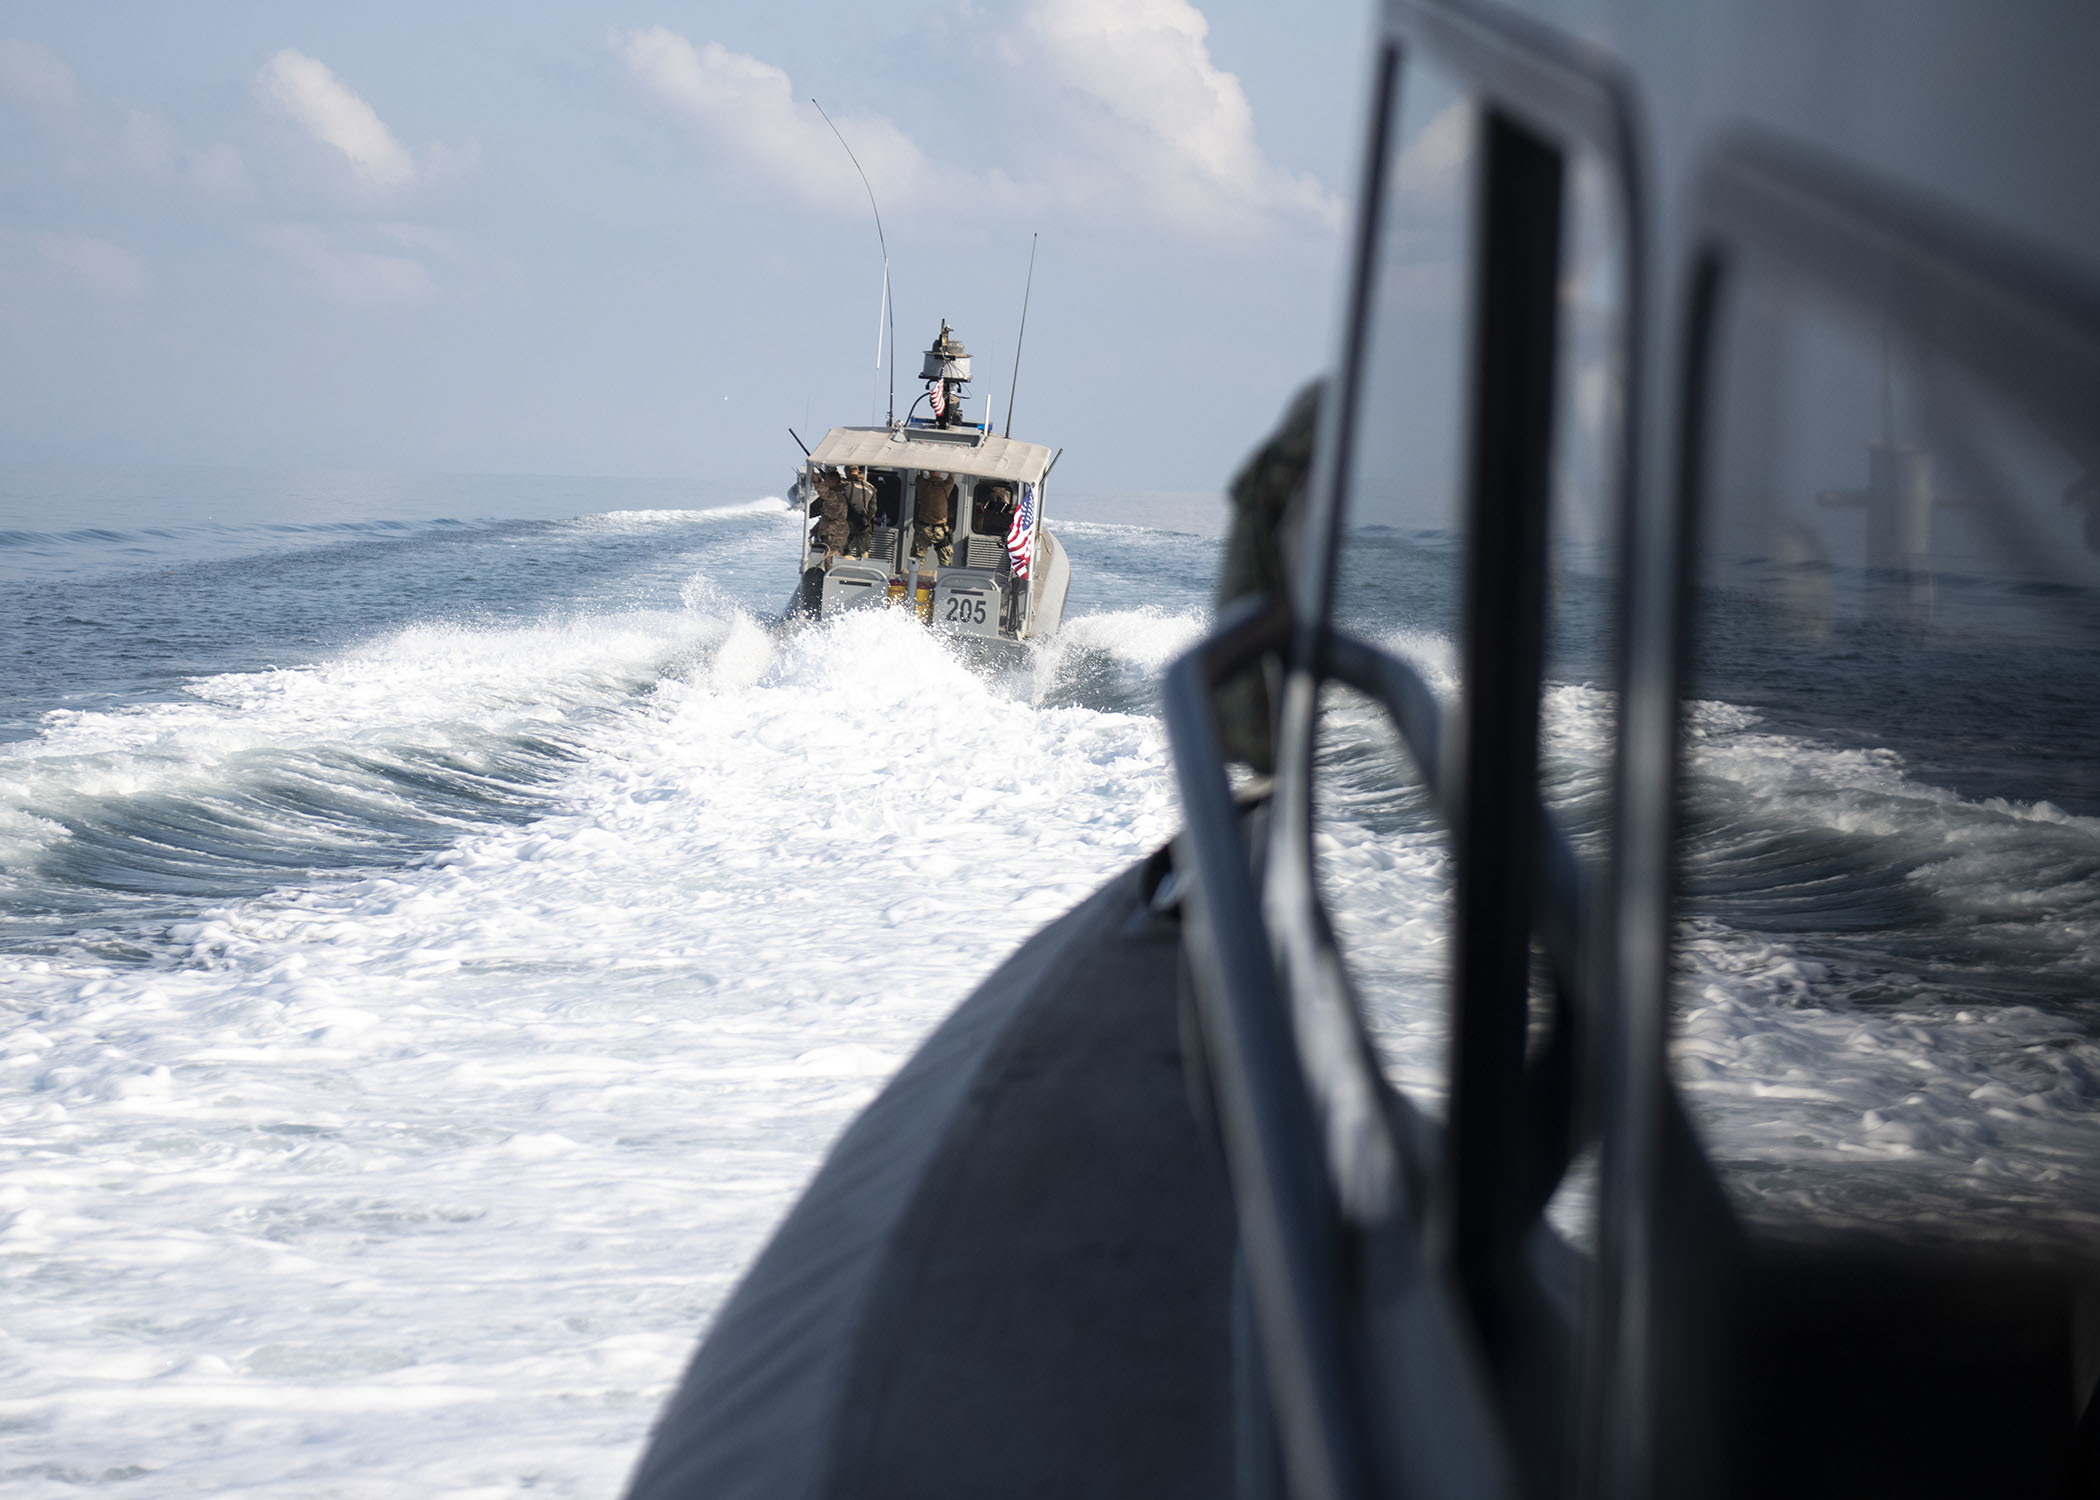 U.S. Navy Sailors from Coastal Riverine Squadron (CRS) 8, Combined Joint Task Force-Horn of Africa, Camp Lemonnier, Djibouti, pilot Rigid Hull Inflatable Boats while en route to provide armed escort to the fleet replenishment oiler USNS Henry J. Kaiser (T-AO 187), in the Gulf of Tadjourah, Dec. 7, 2018. Coastal Riverine Squadron 8 is a hardware-equipped, intelligence, surveillance, reconnaissance embedded, deployable asset that provides centralized planning, control, coordination and integration of its boat and security platoons. (U.S. Air Force photo by Tech. Sgt. Shawn Nickel)